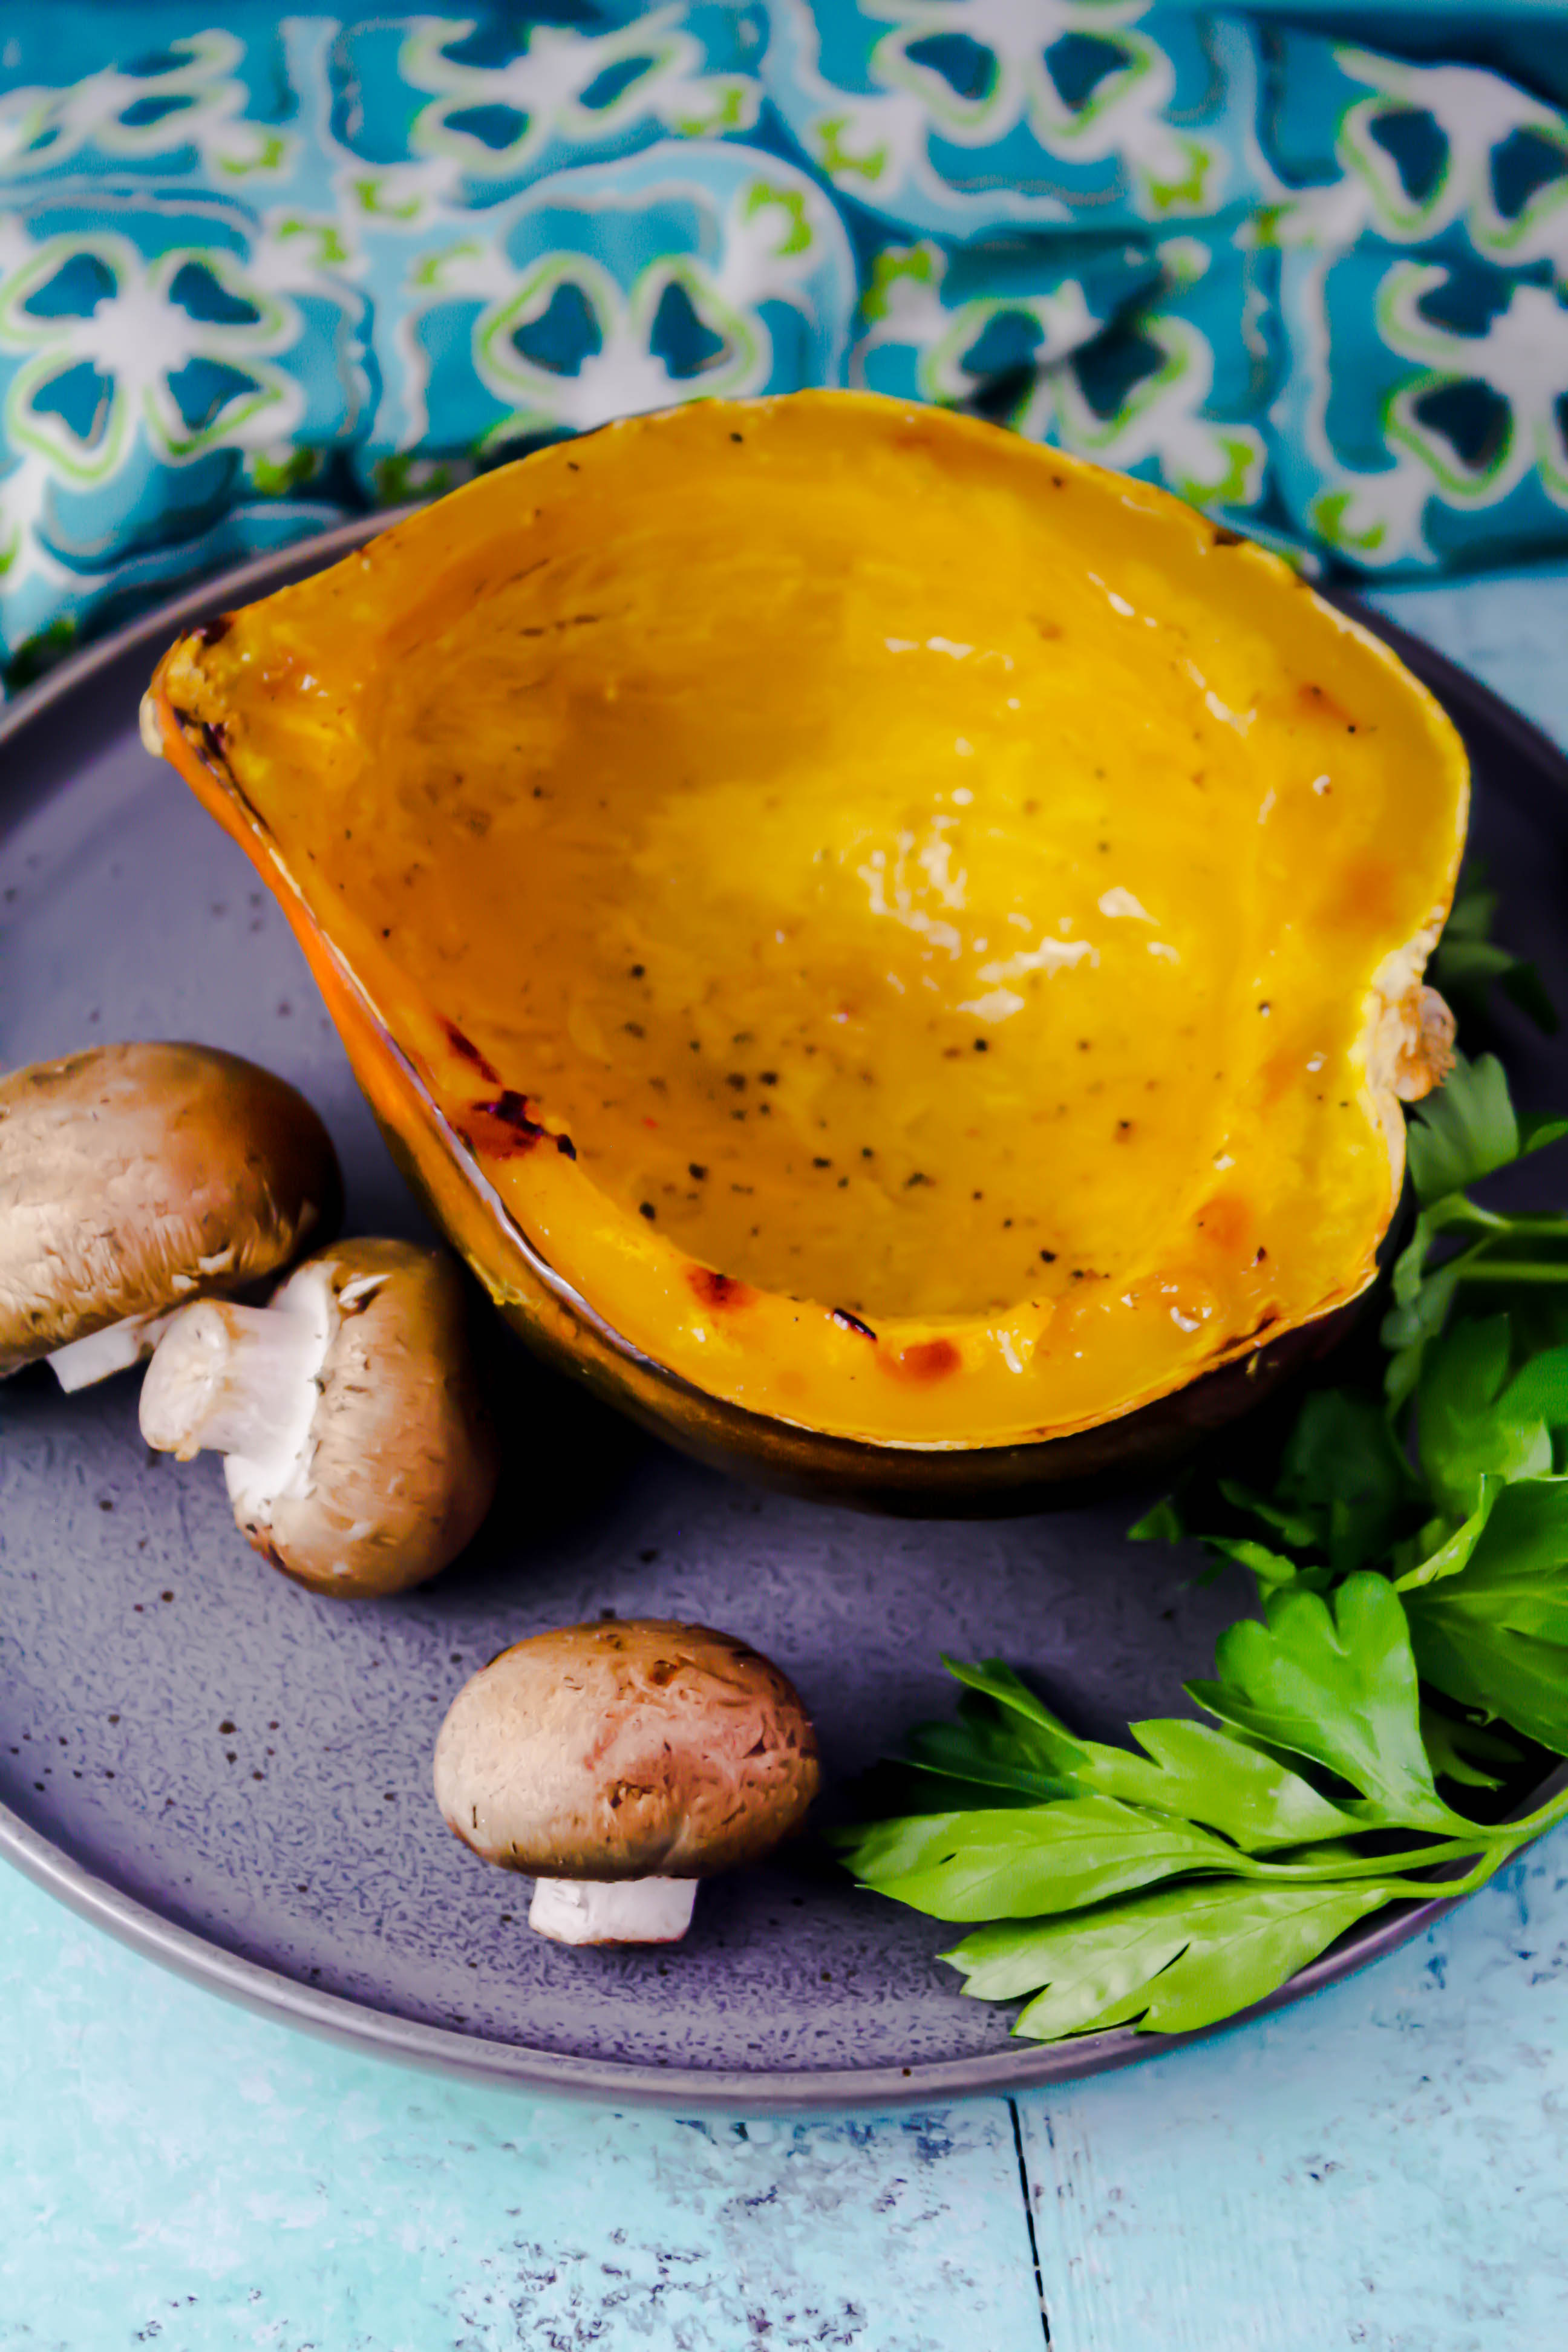 Acorn Squash Stuffed with Brown Rice, Mushrooms, and Cranberries makes a tasty dish for any winter meal. Acorn Squash Stuffed with Brown Rice, Mushrooms, and Cranberries is a delightful dish everyone will love.